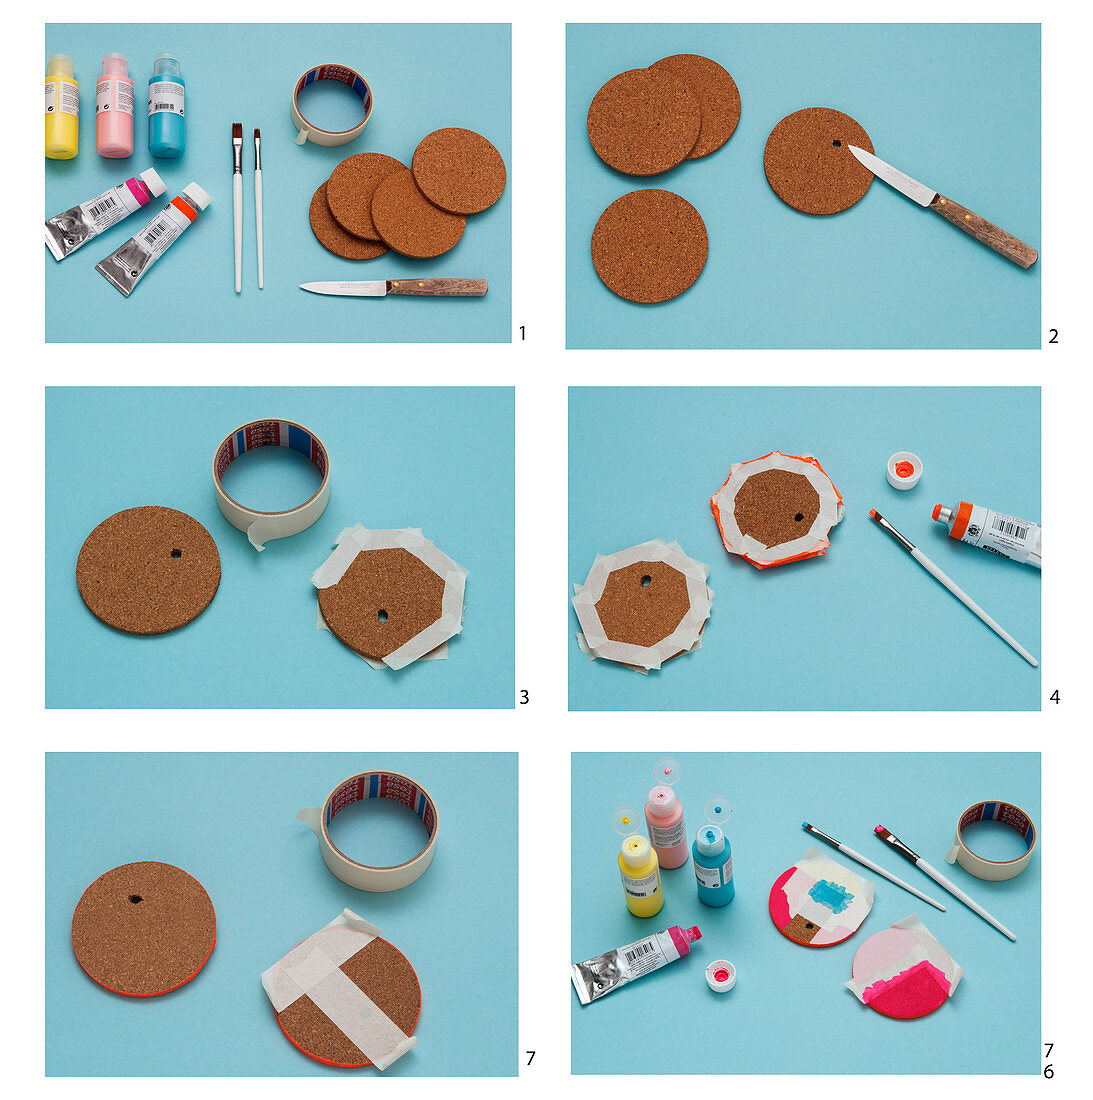 Instructions for making glass covers from cork coasters